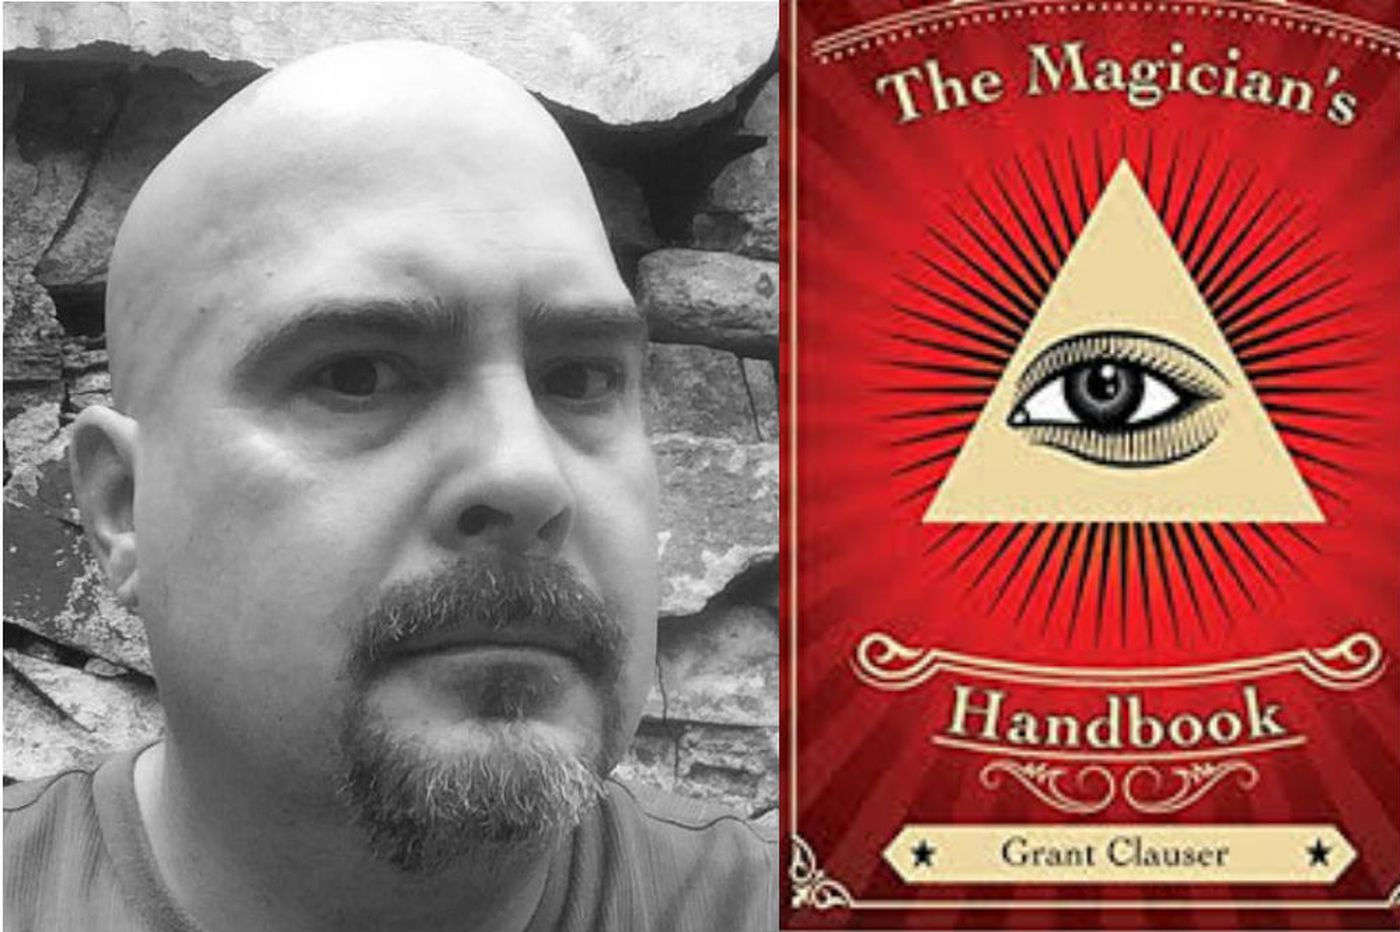 Grant Clauser's 'Magician's Handbook': A fine, magical collection from a local poet